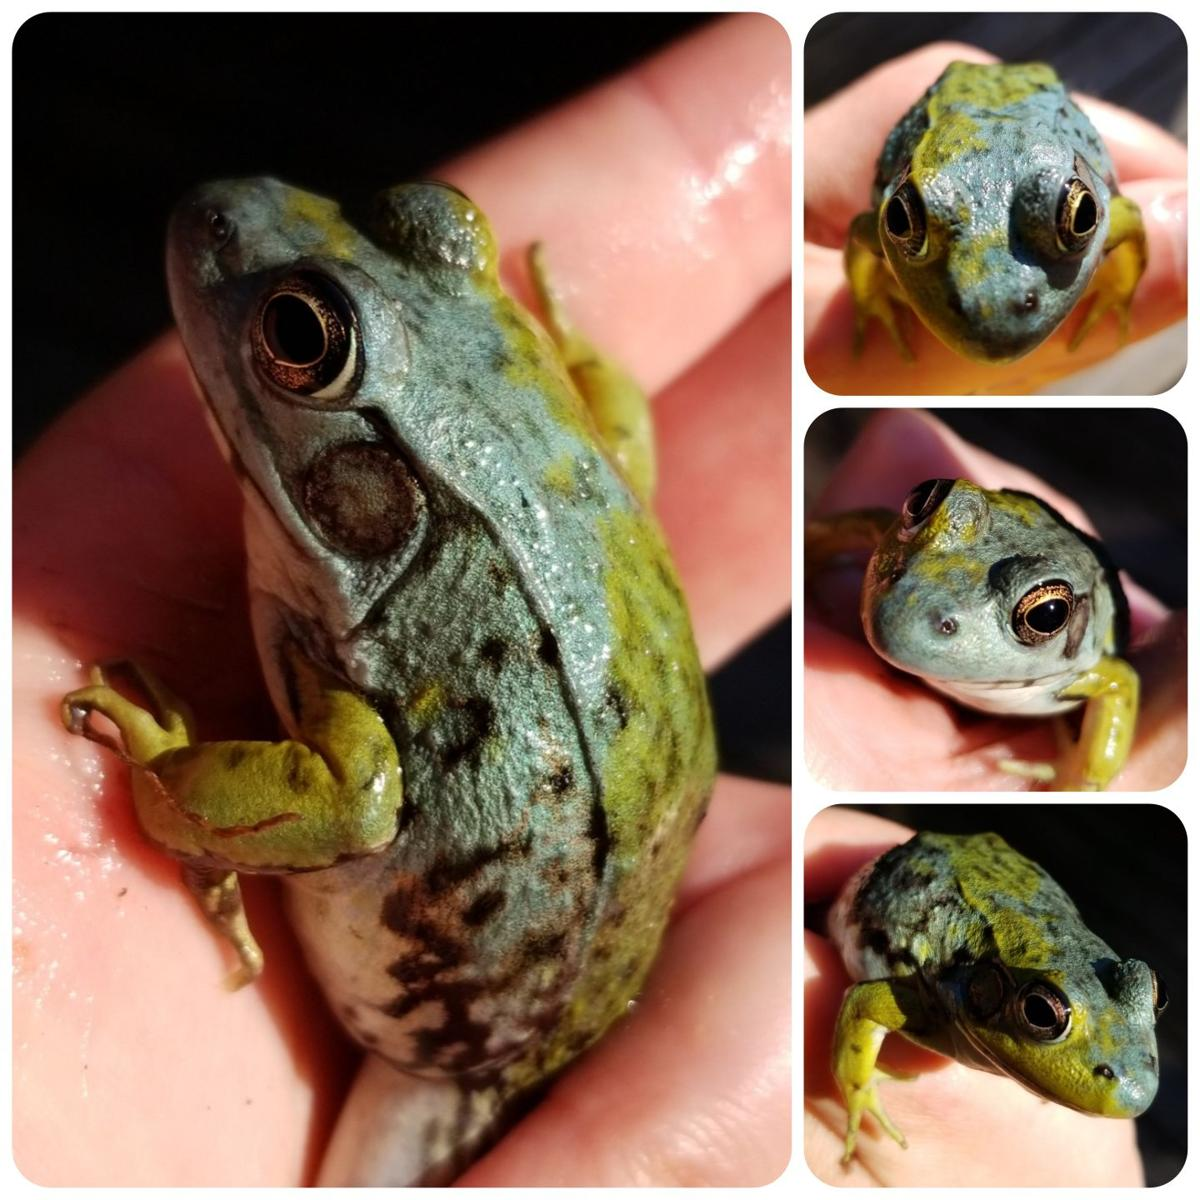 Rare blue frog found in Kingsley | GO | record-eagle.com